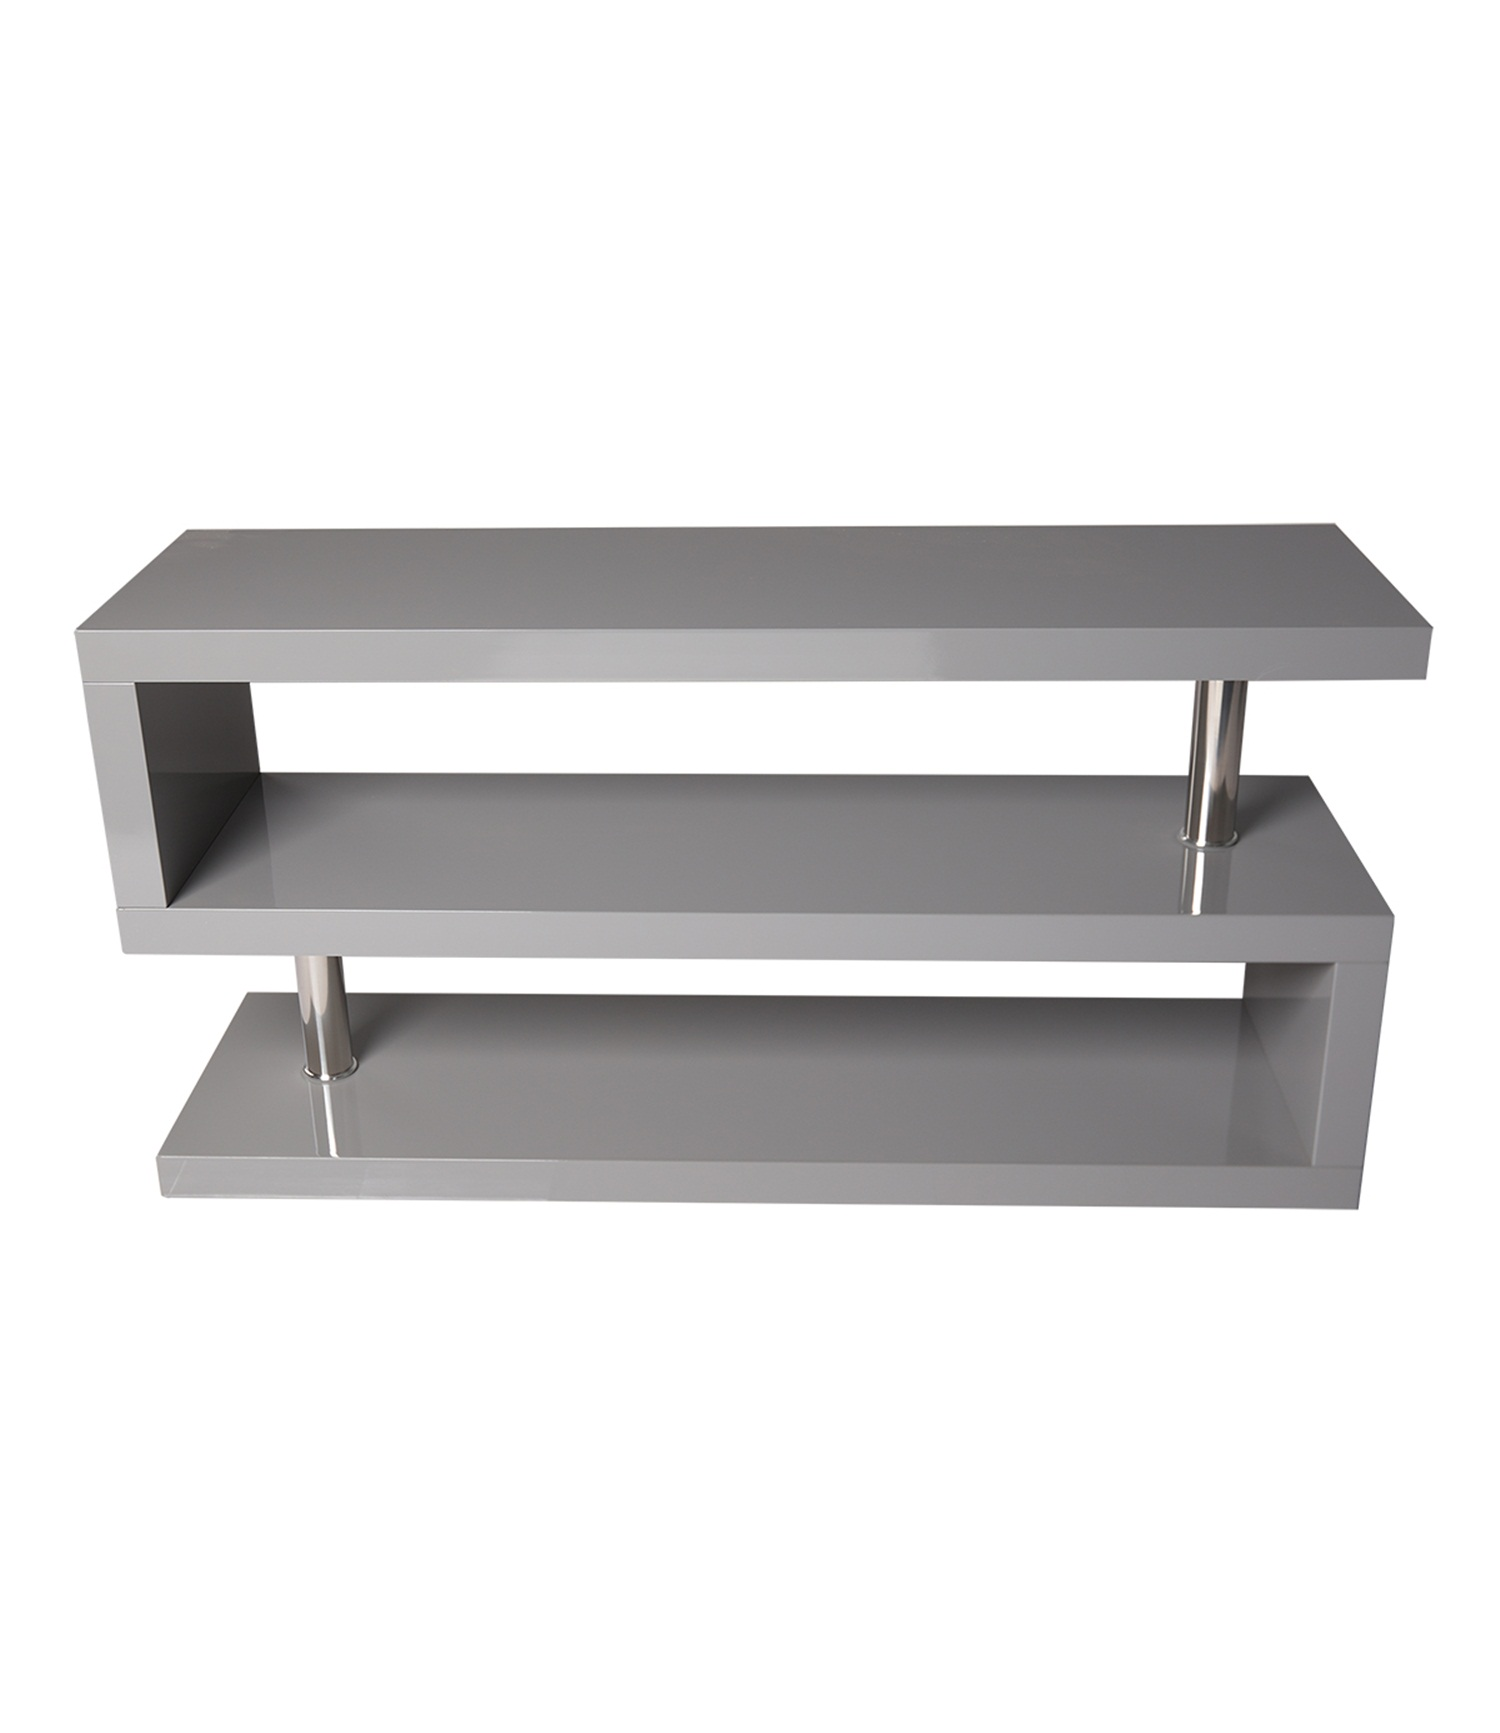 Miami Tv Stand NEW GREY